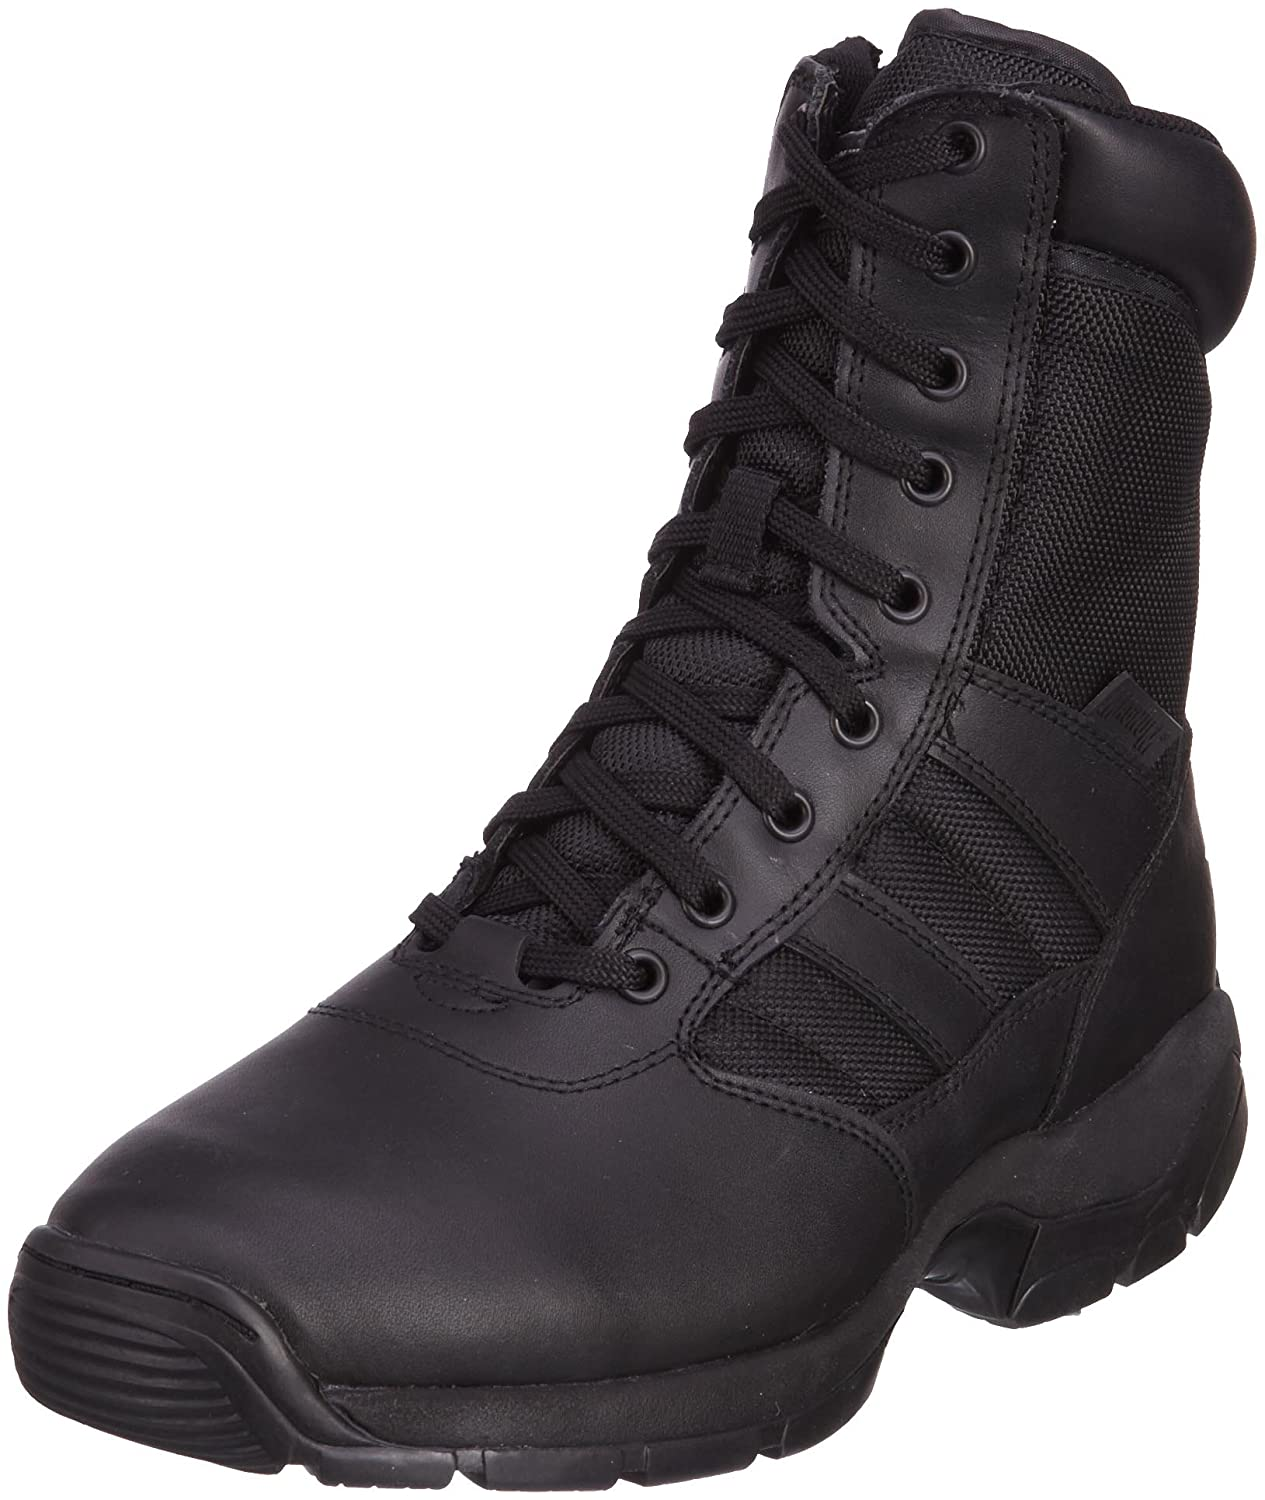 Magnum Unisex Adults' Panther 8.0 Side-Zip Work Boots 54296/069/01